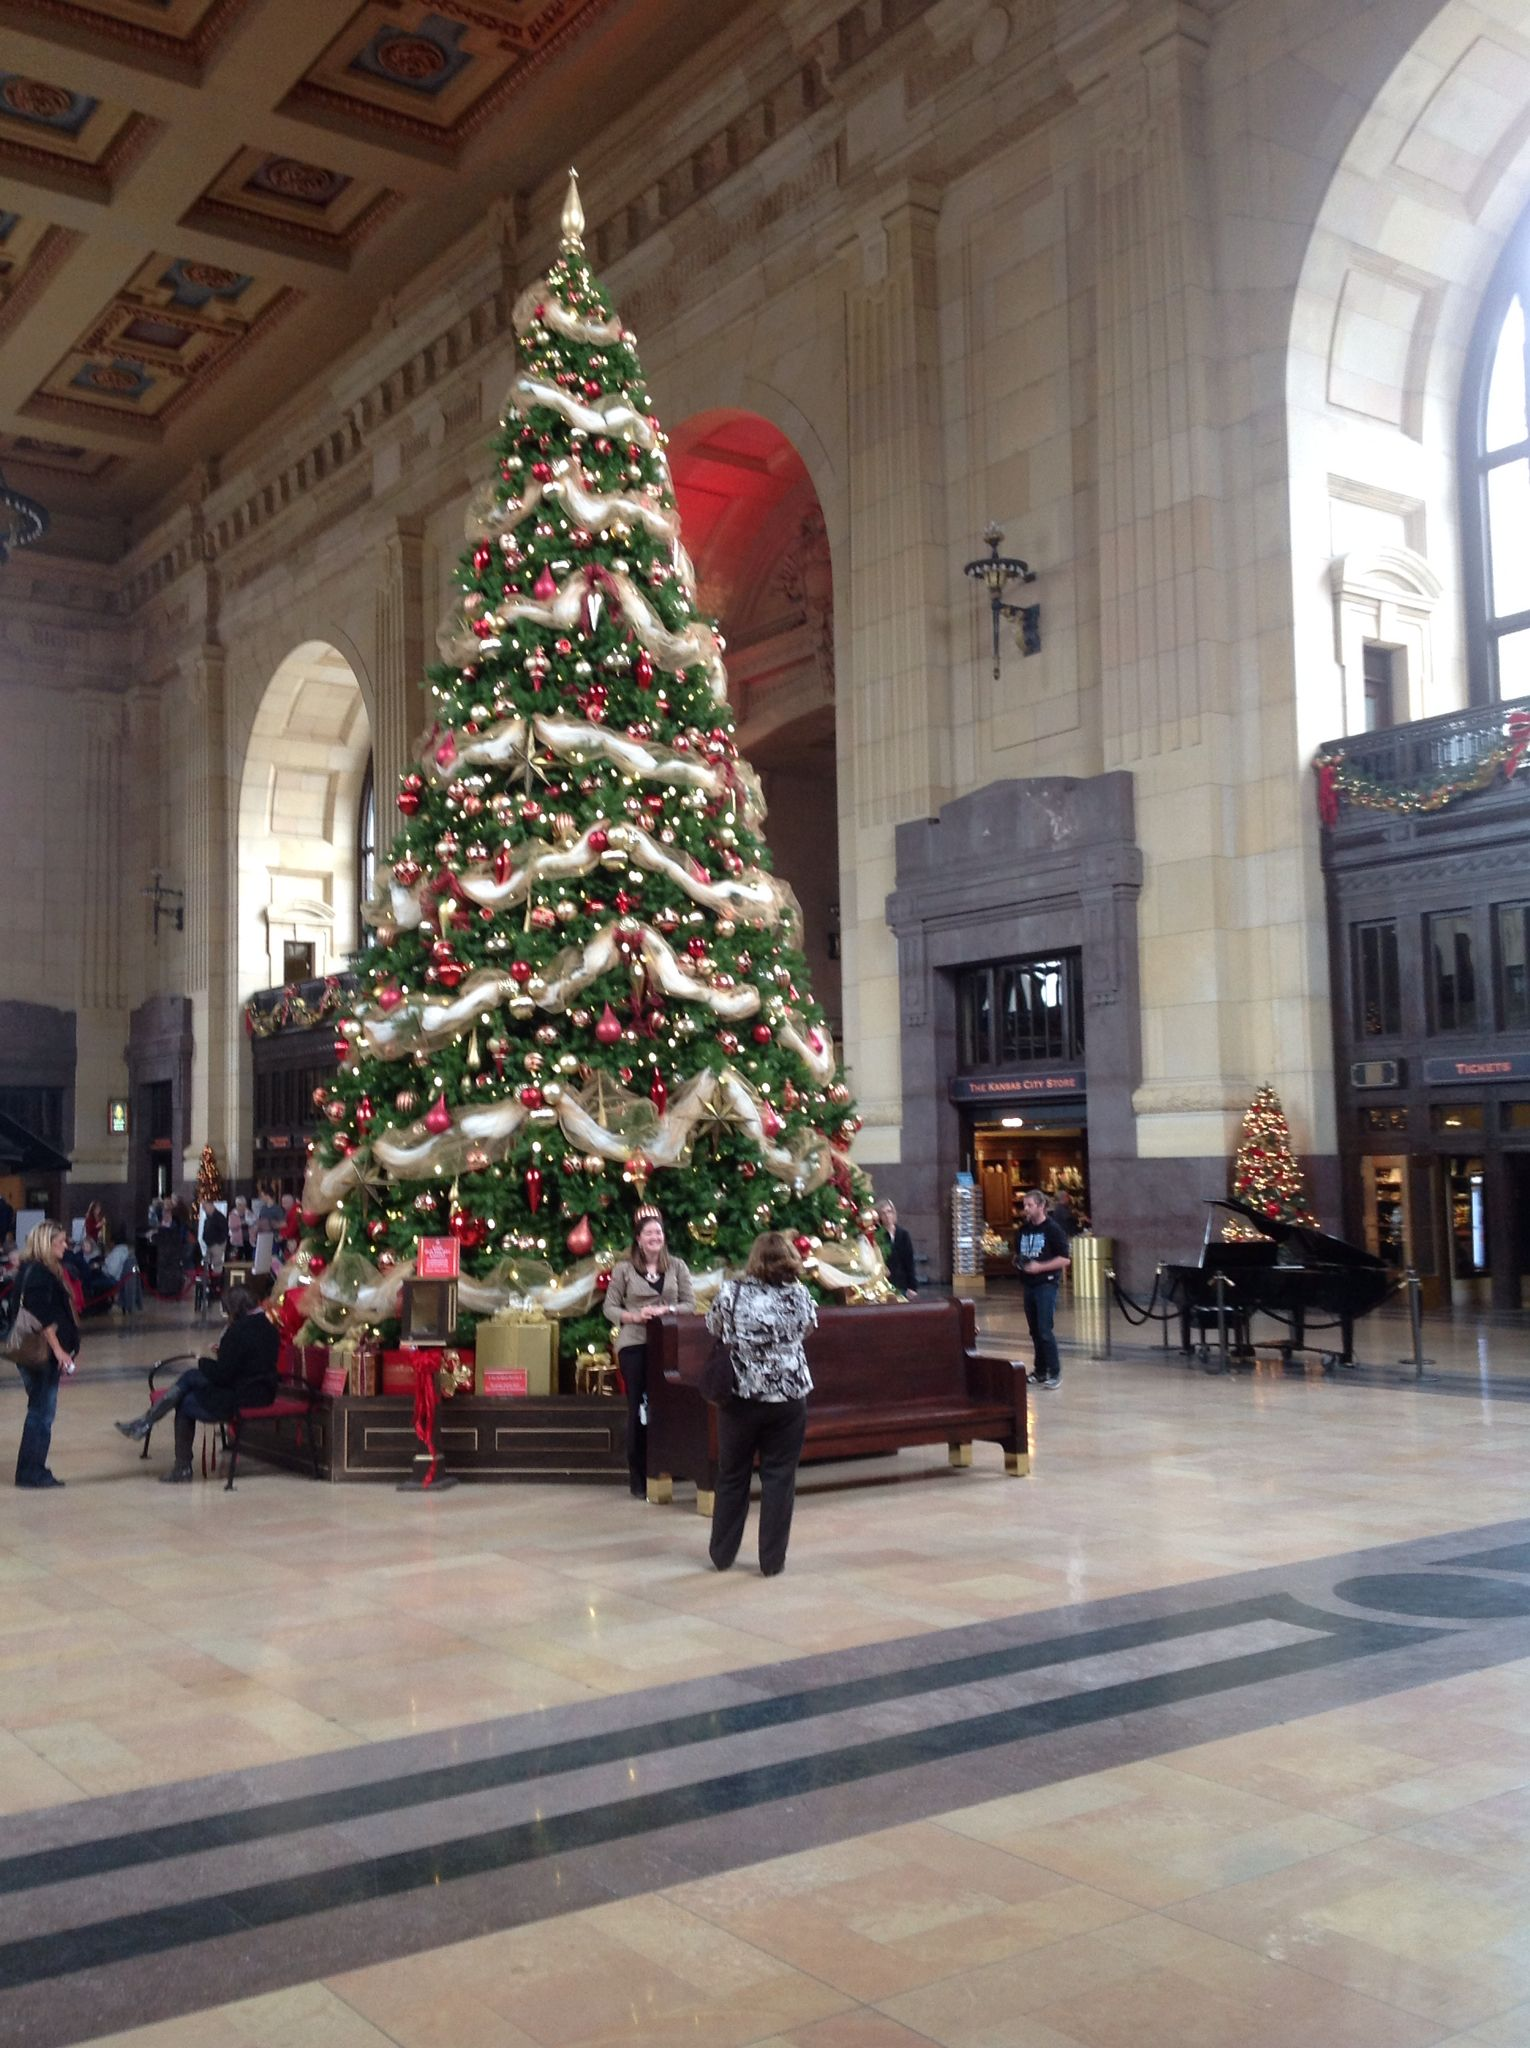 Union StationChristmas 2014 cannot wait to be there in 2